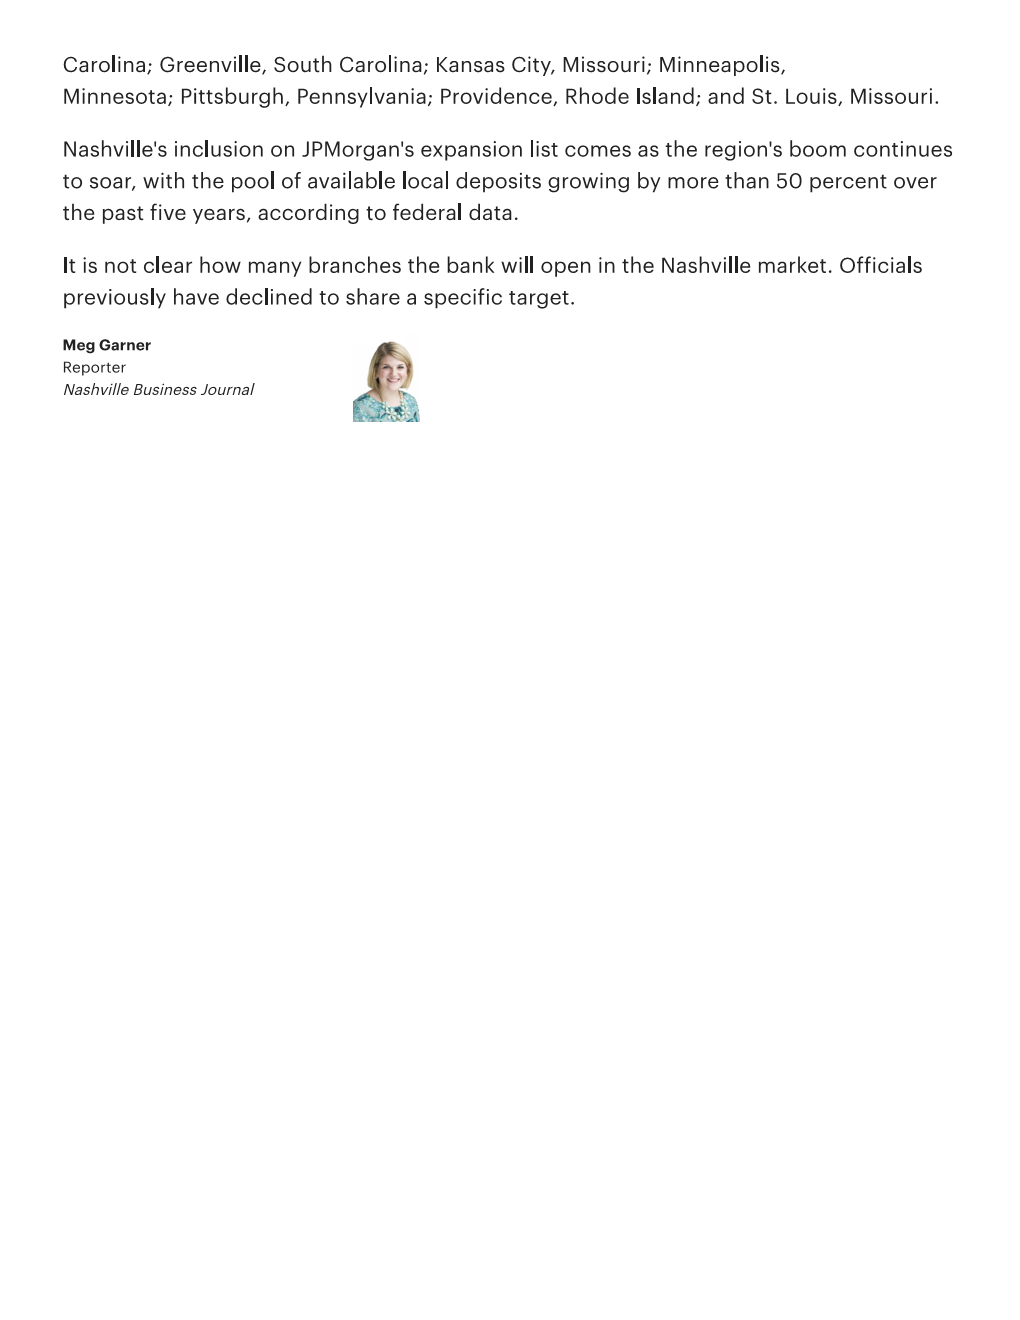 JPMorgan Chase selects Berry Hill for f...le branch - Nashville Business Journal Page 003.png